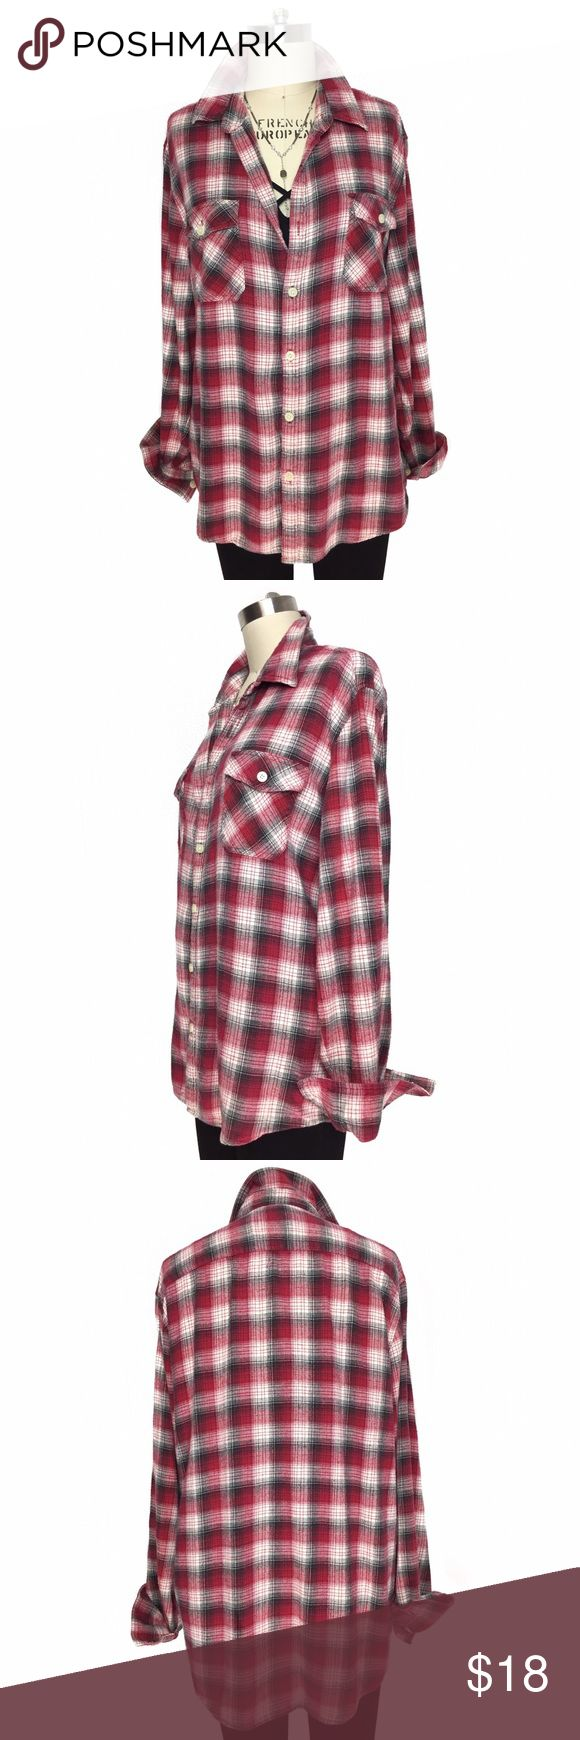 COTTON PLAID WORN IN ULTRA SOFT PLAID BUTTON DOWN! COTTON PLAID WORN IN ULTRA SOFT PLAID BUTTON DOWN! Great staple for your outfits! Lightweight fabric is pilled to perfection feeling like its been washed a million times! Double front pockets. Perfect for everyday layering! Measurements - LENGTH: 27.5' / BUST: 23' Marked size XL. Vintage Tops Button Down Shirts